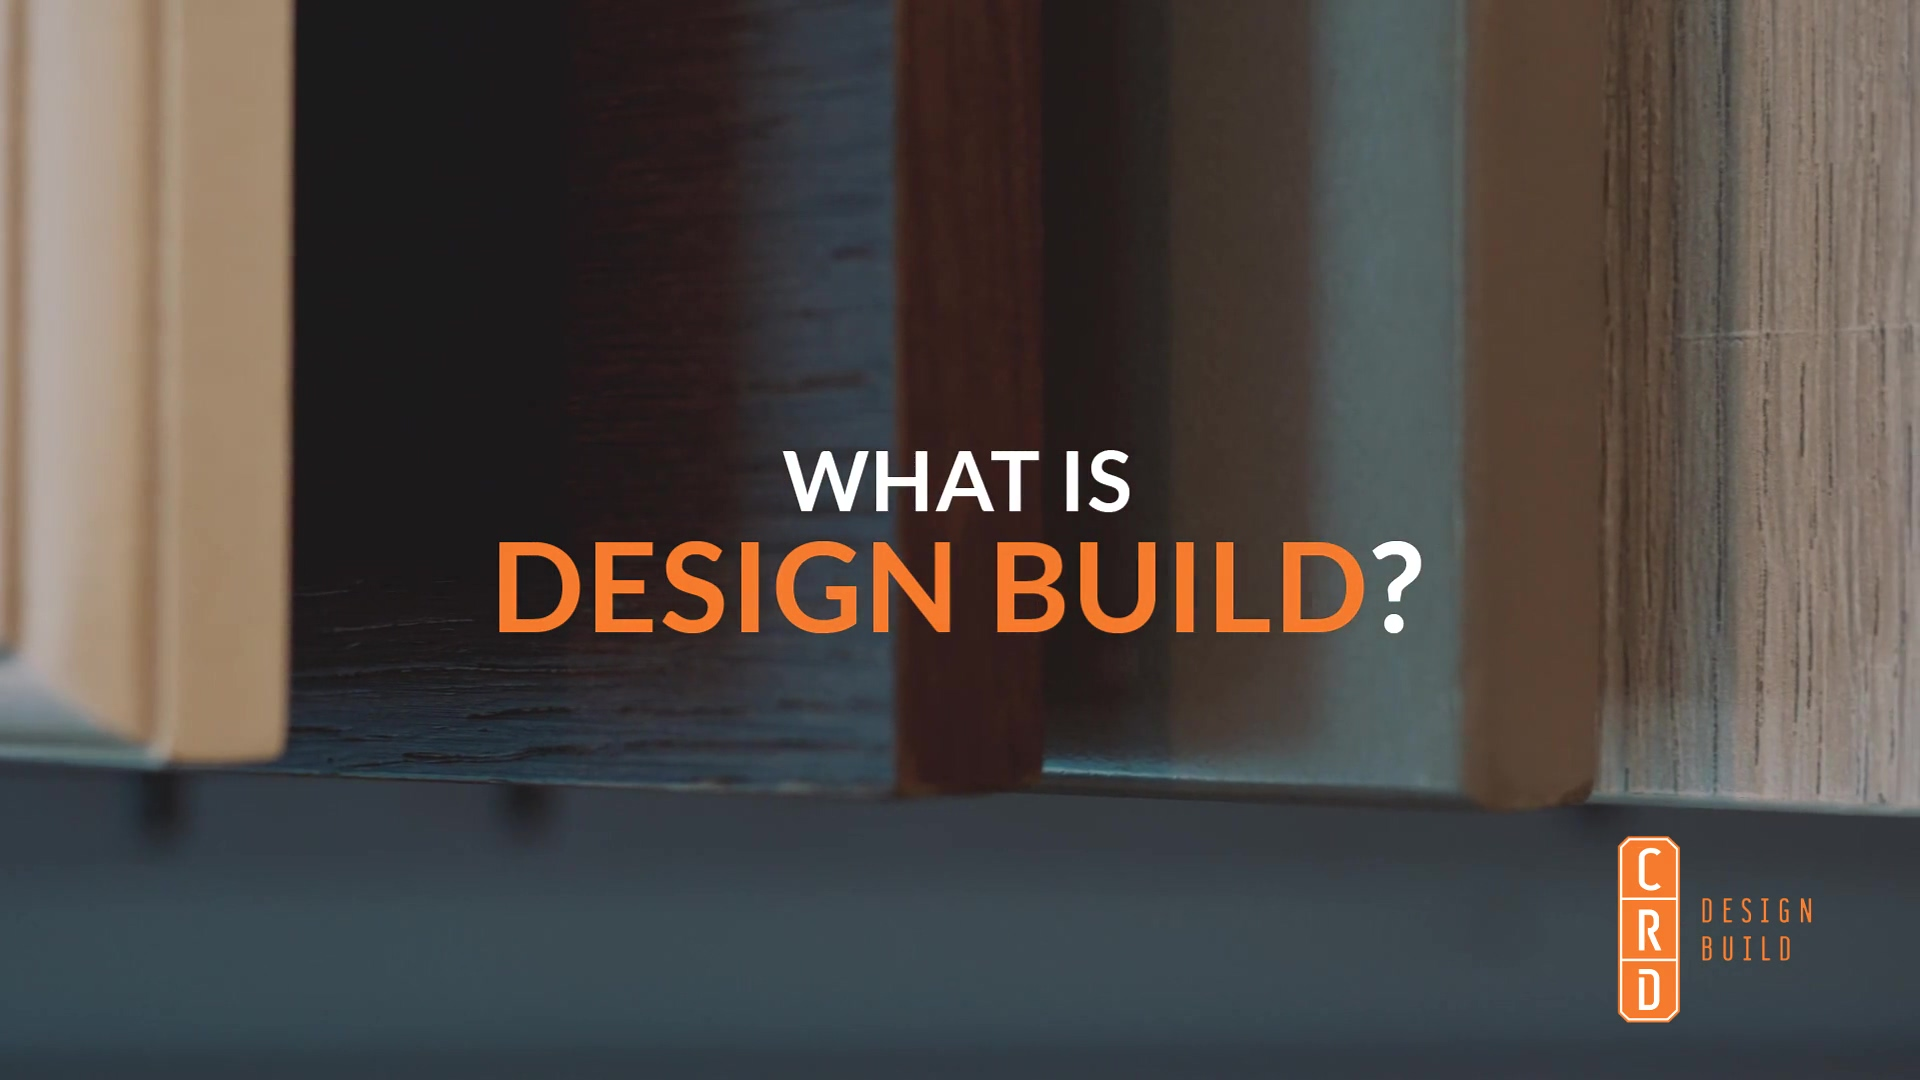 CRD - What is design build